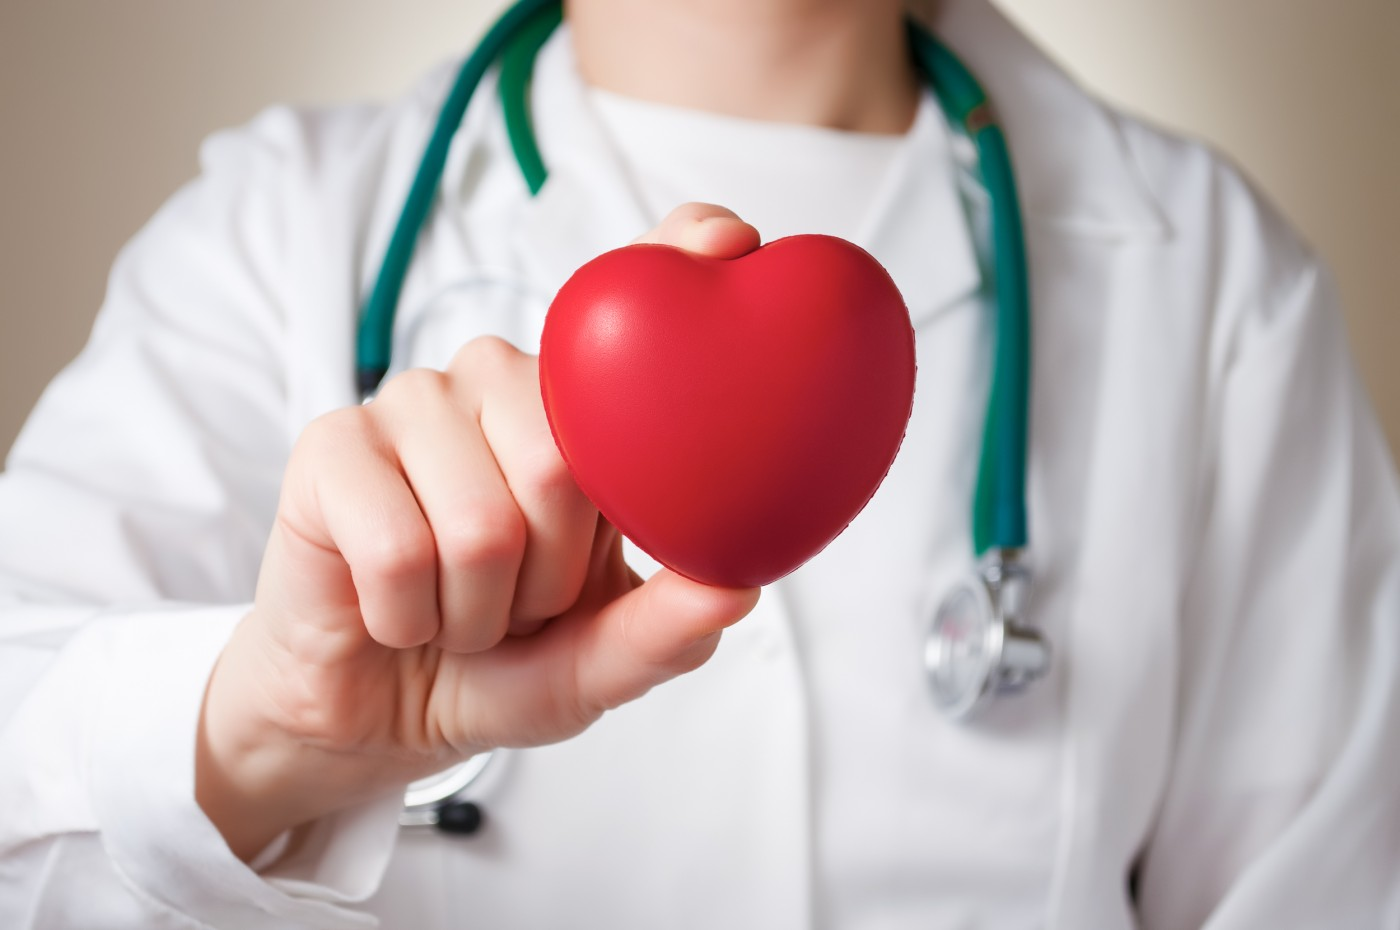 Researchers Discover Link Between Rheumatoid Arthritis and Heart Valve Disease